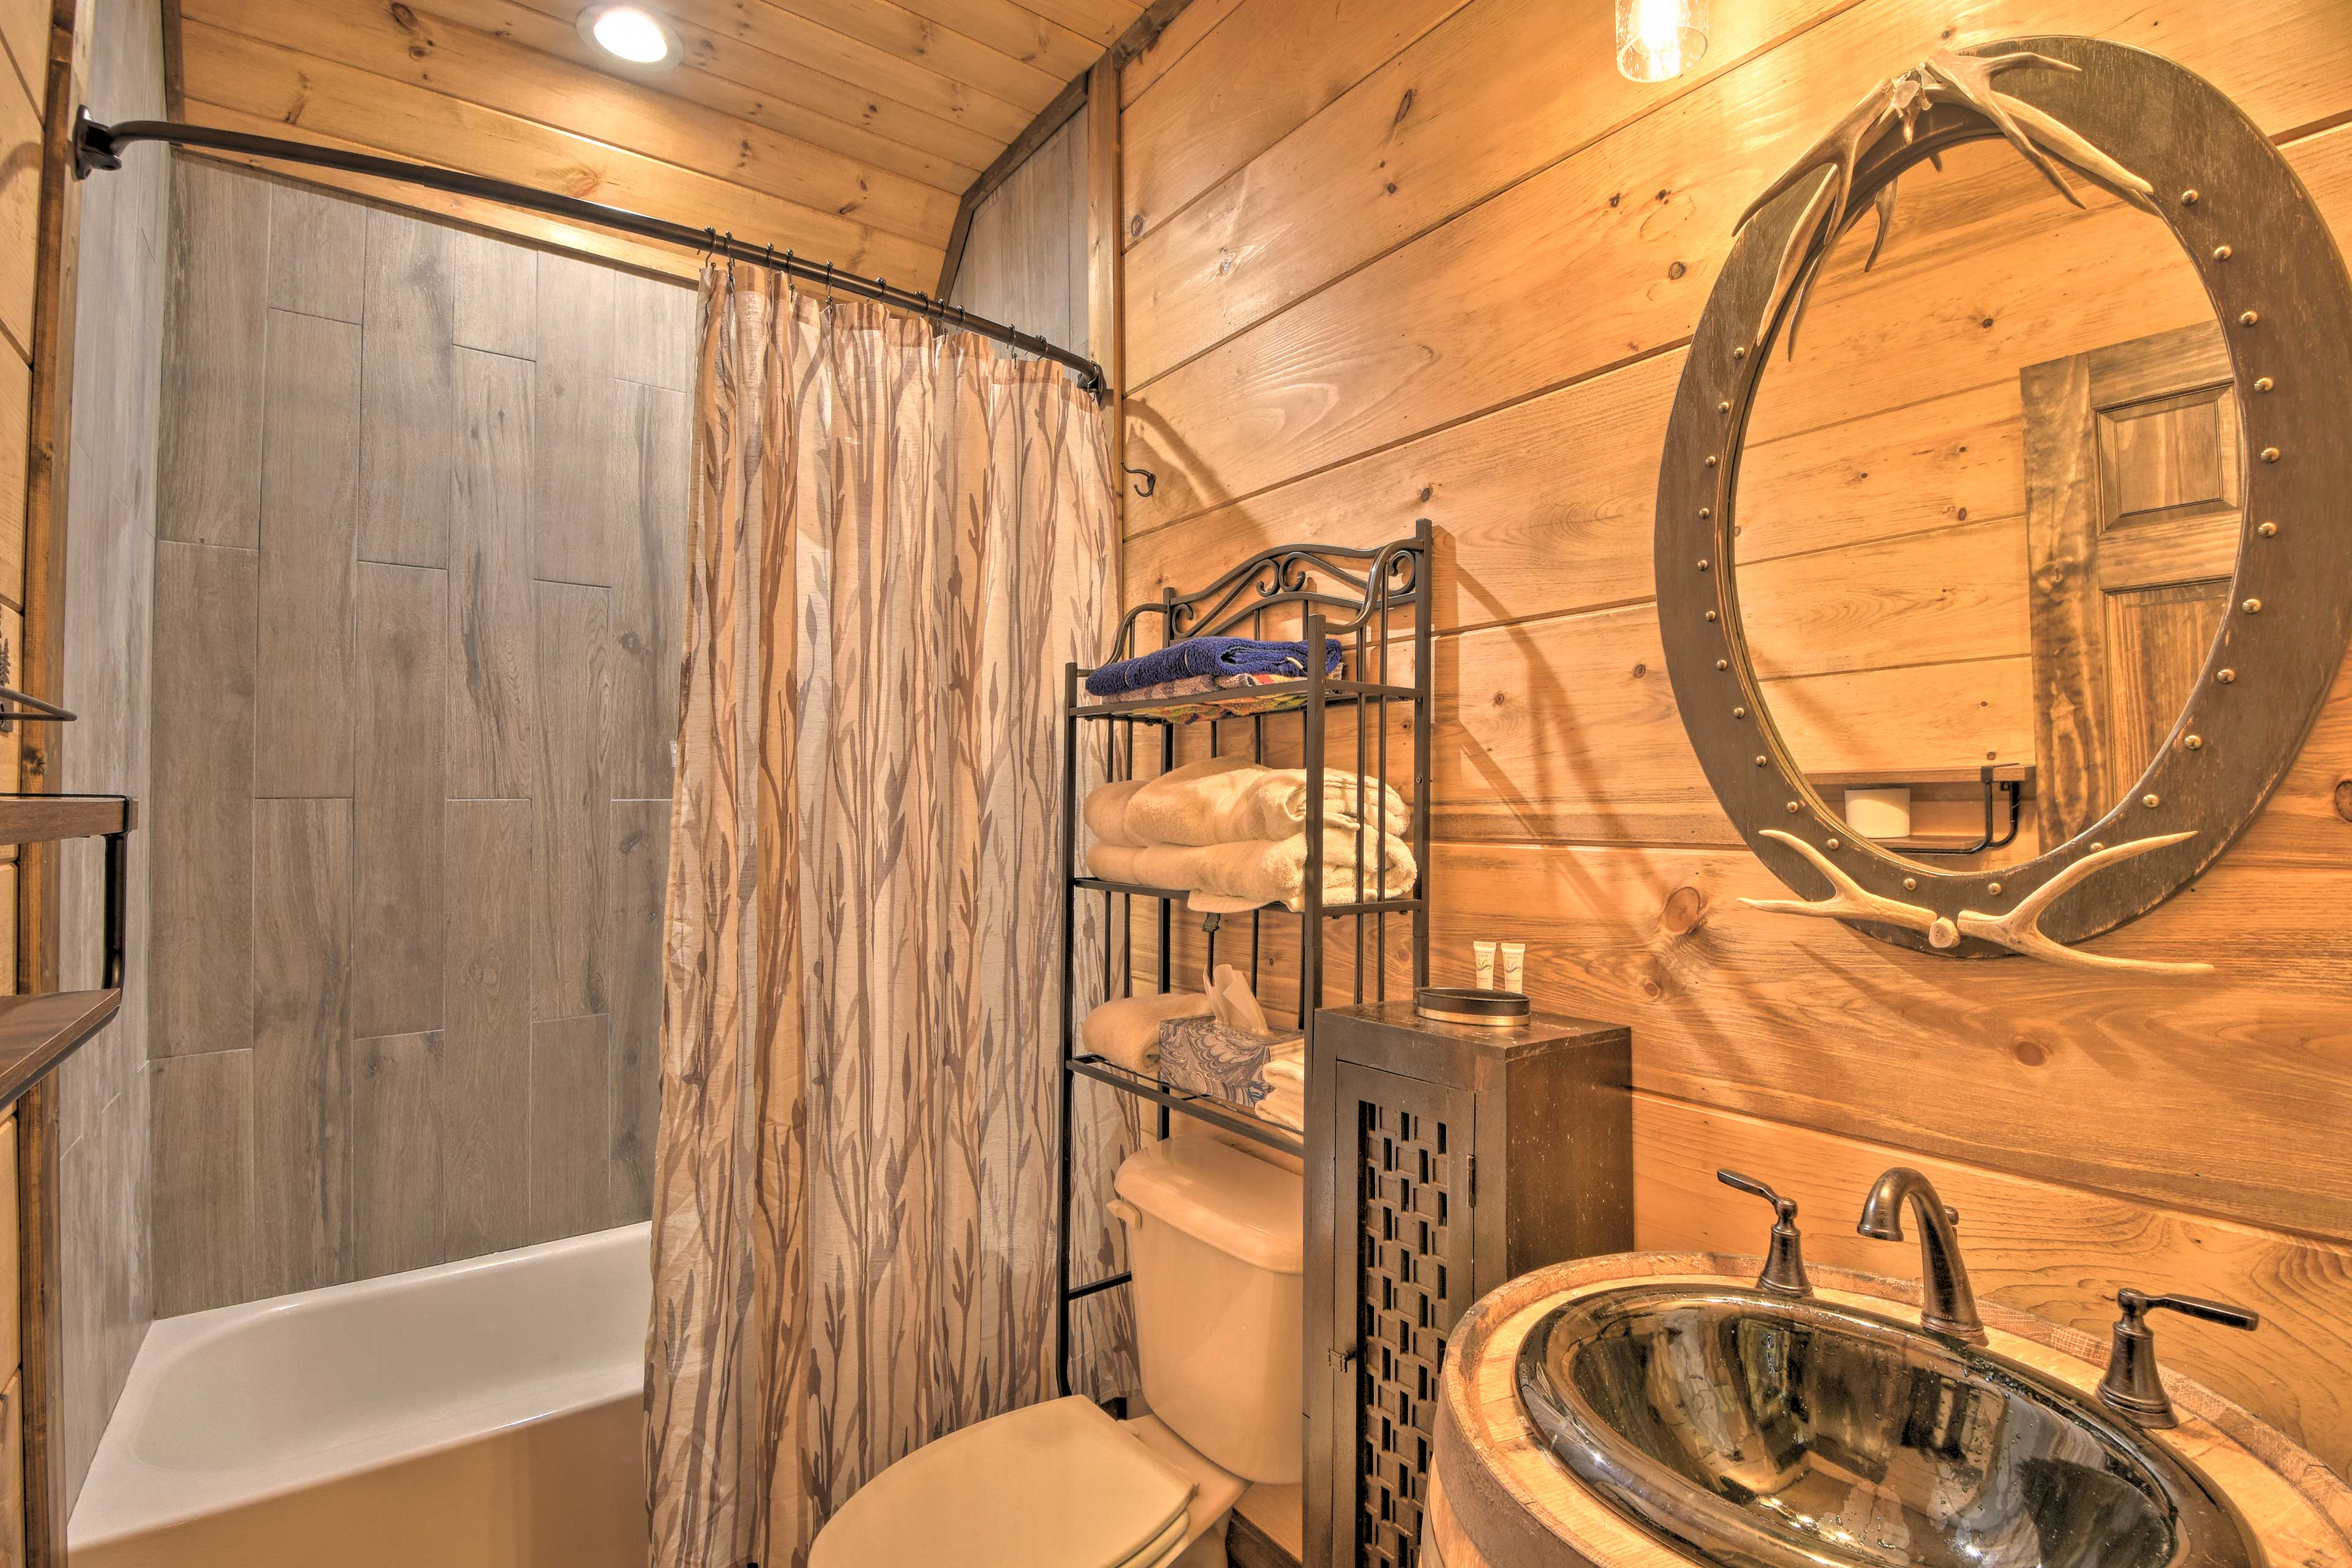 This rustic bathroom is the perfect place to freshen up.